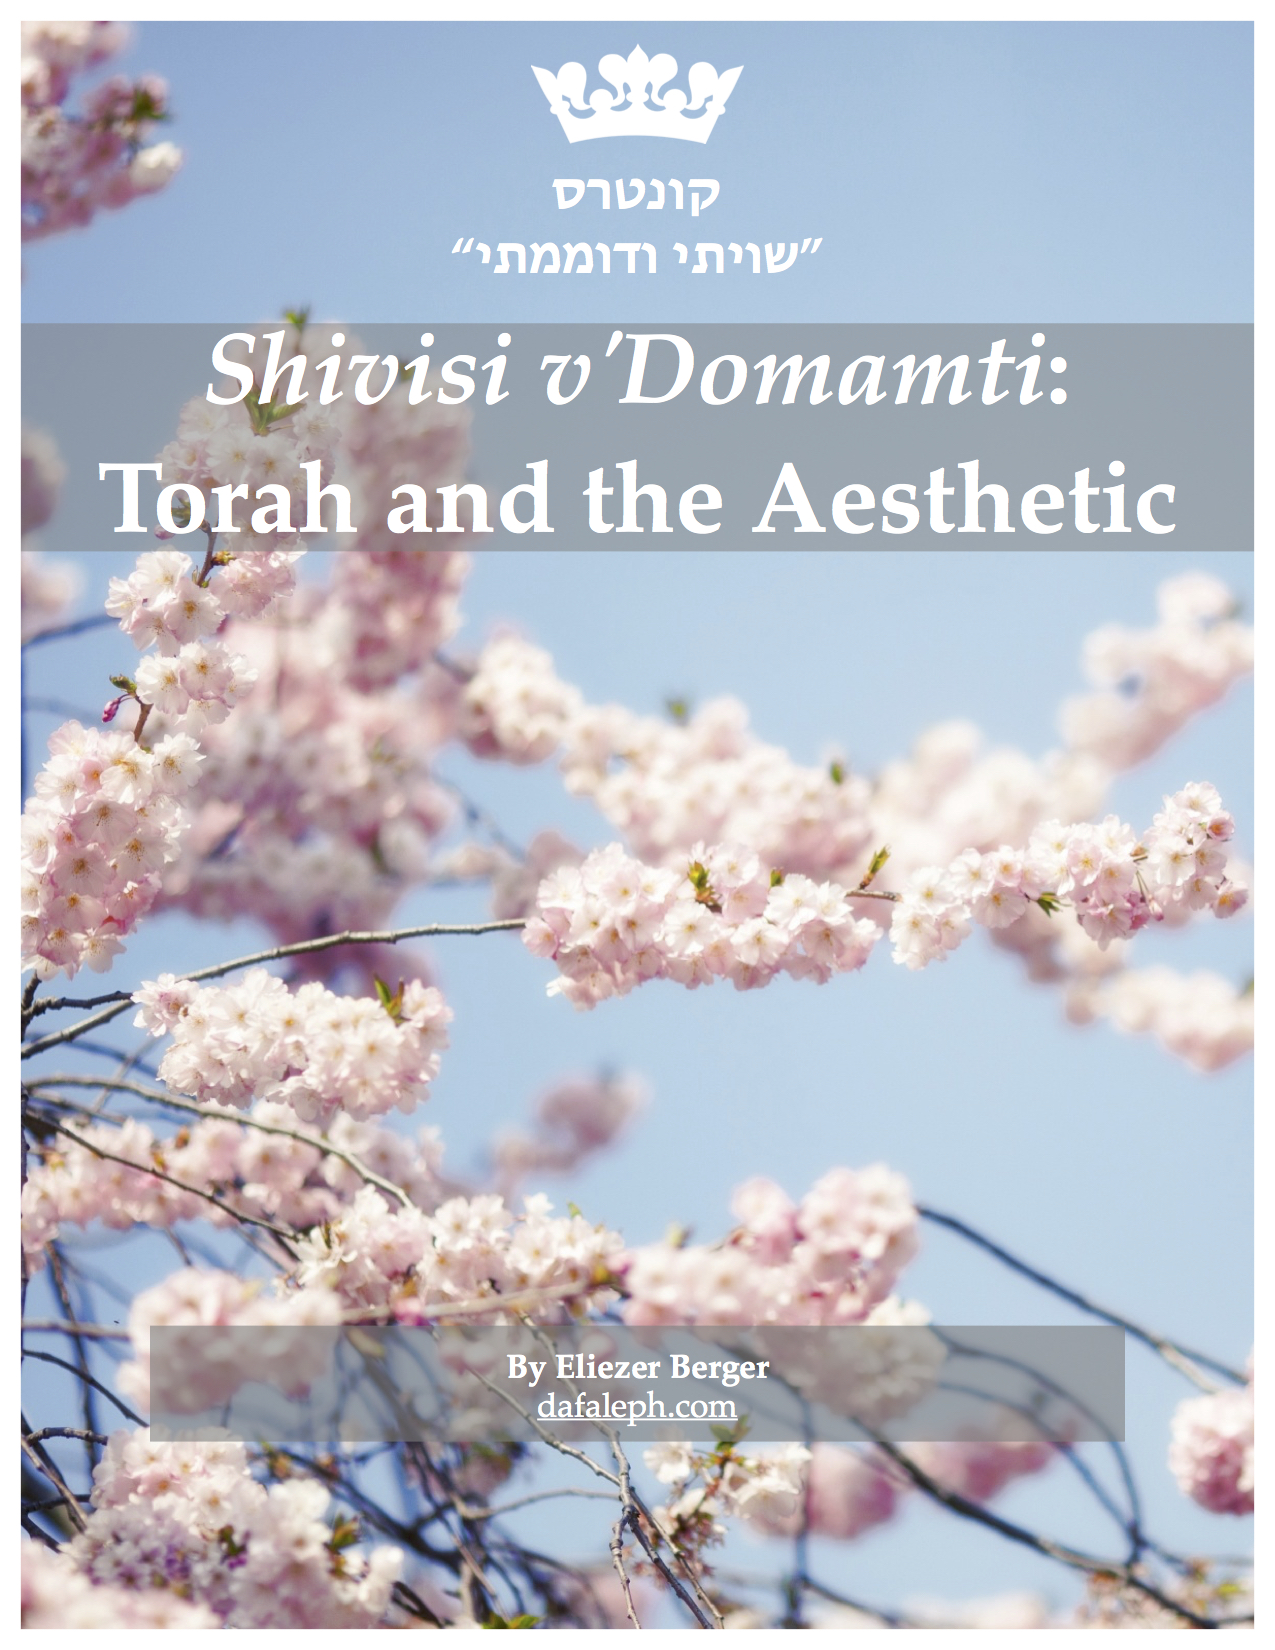 Shivisi v'Domamti  : Torah and the Aesthetic by Eliezer Berger